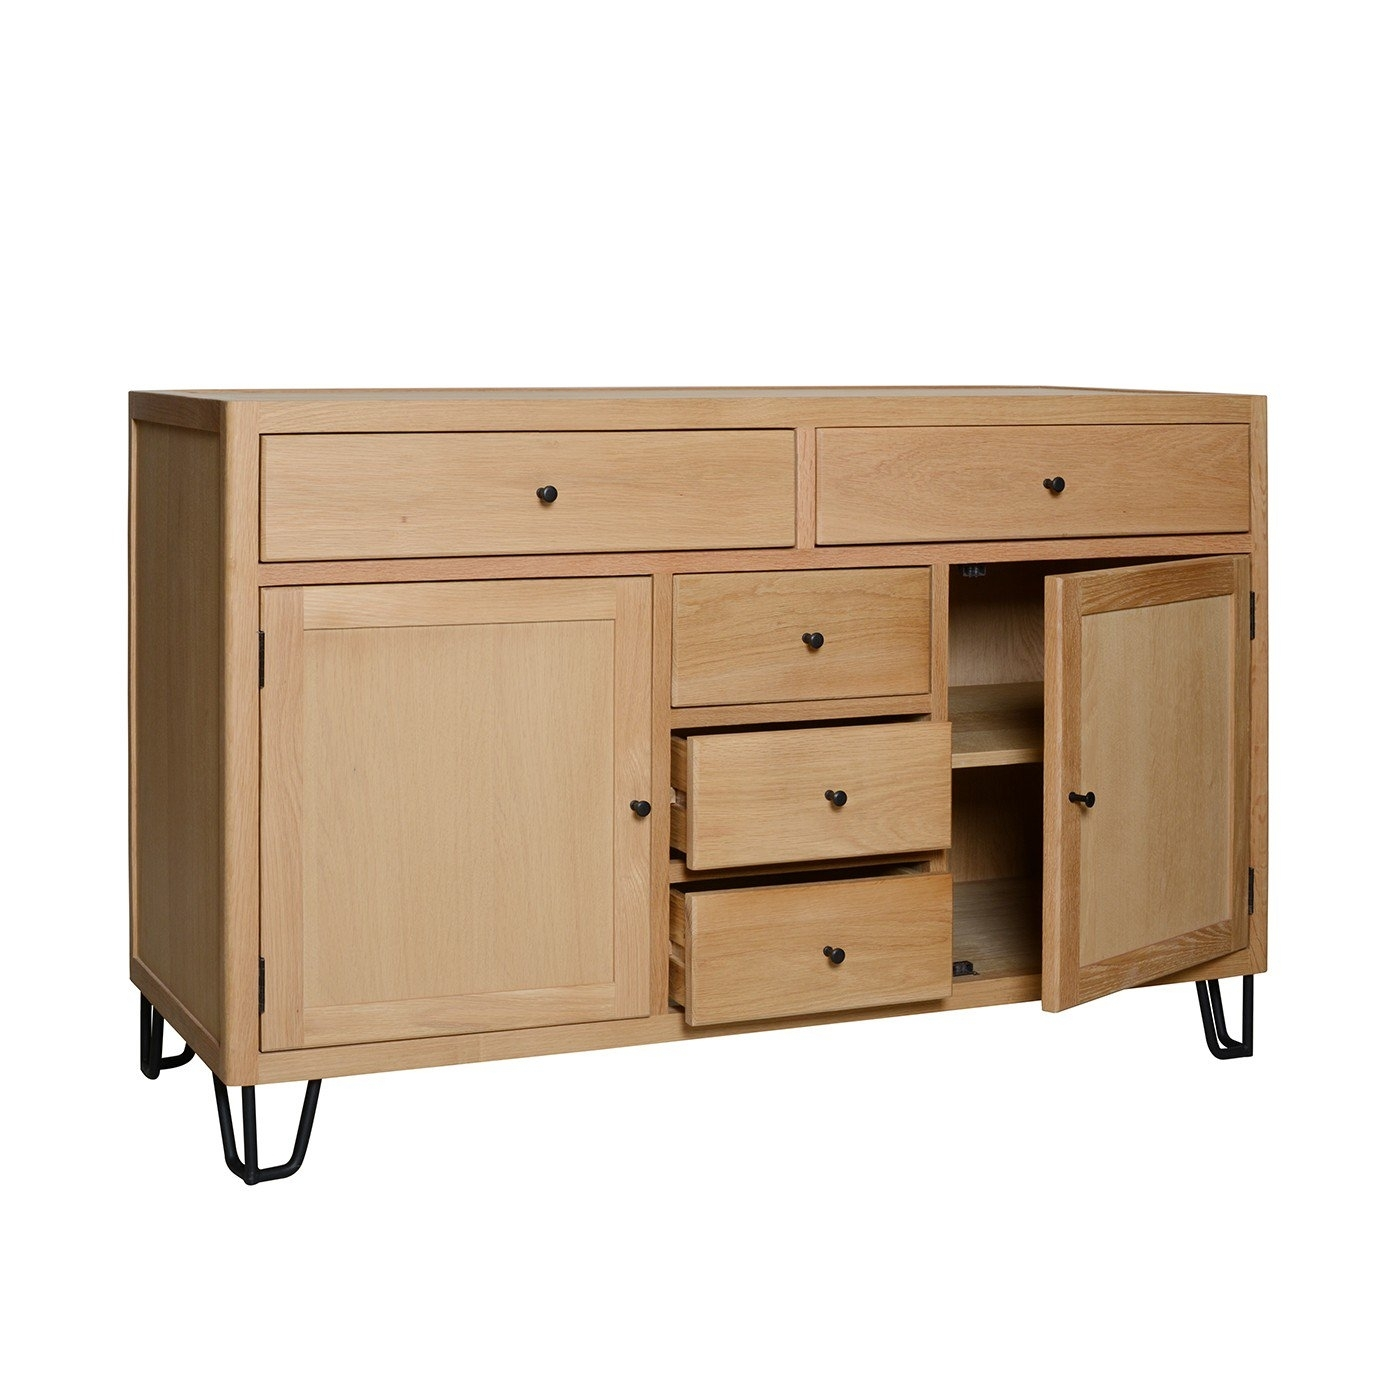 Designer Sideboards | Modern & Contemporary Sideboards | Heal's pertaining to Square Brass 4 Door Sideboards (Image 11 of 30)